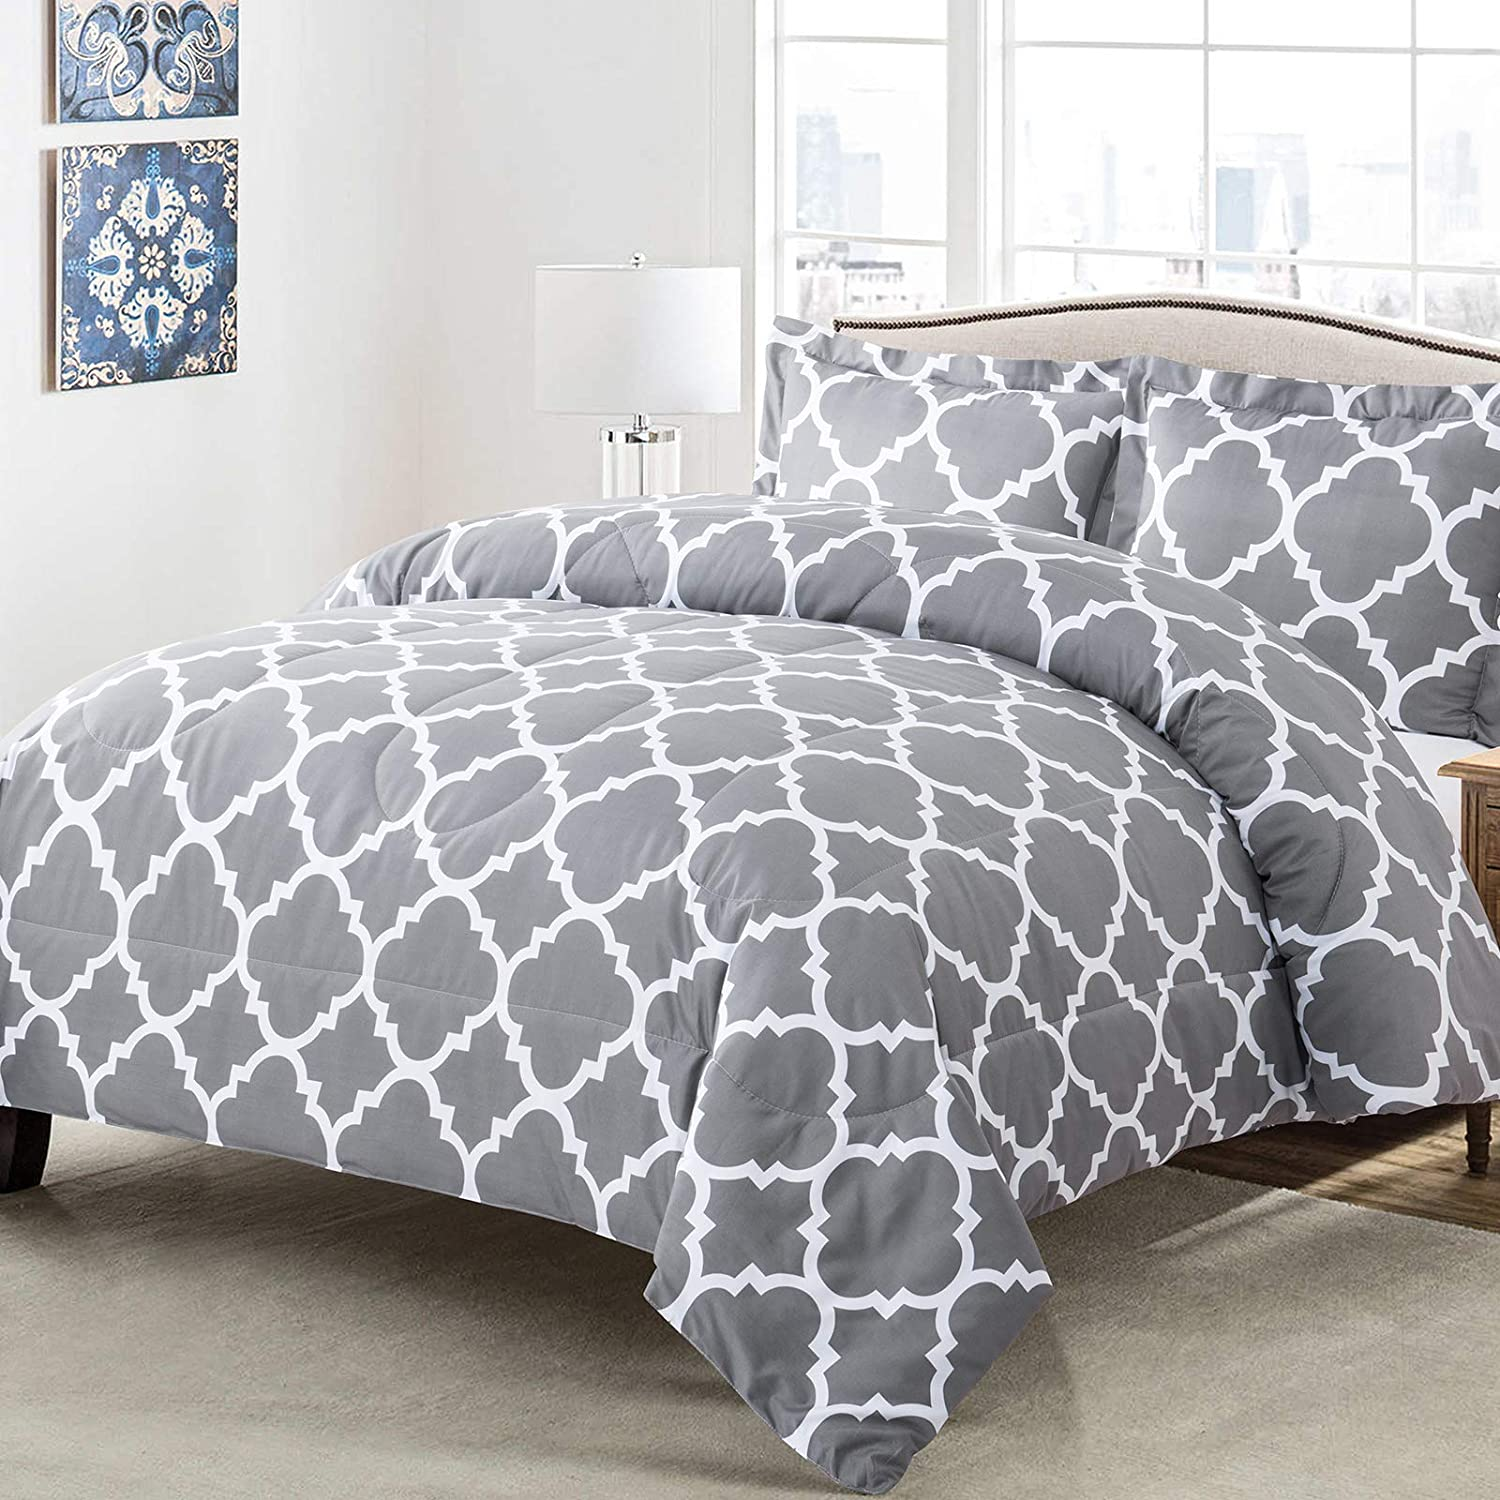 Shatex 3-Piece Microfiber Comforter Set with Pillowcase Simple Style Breathable